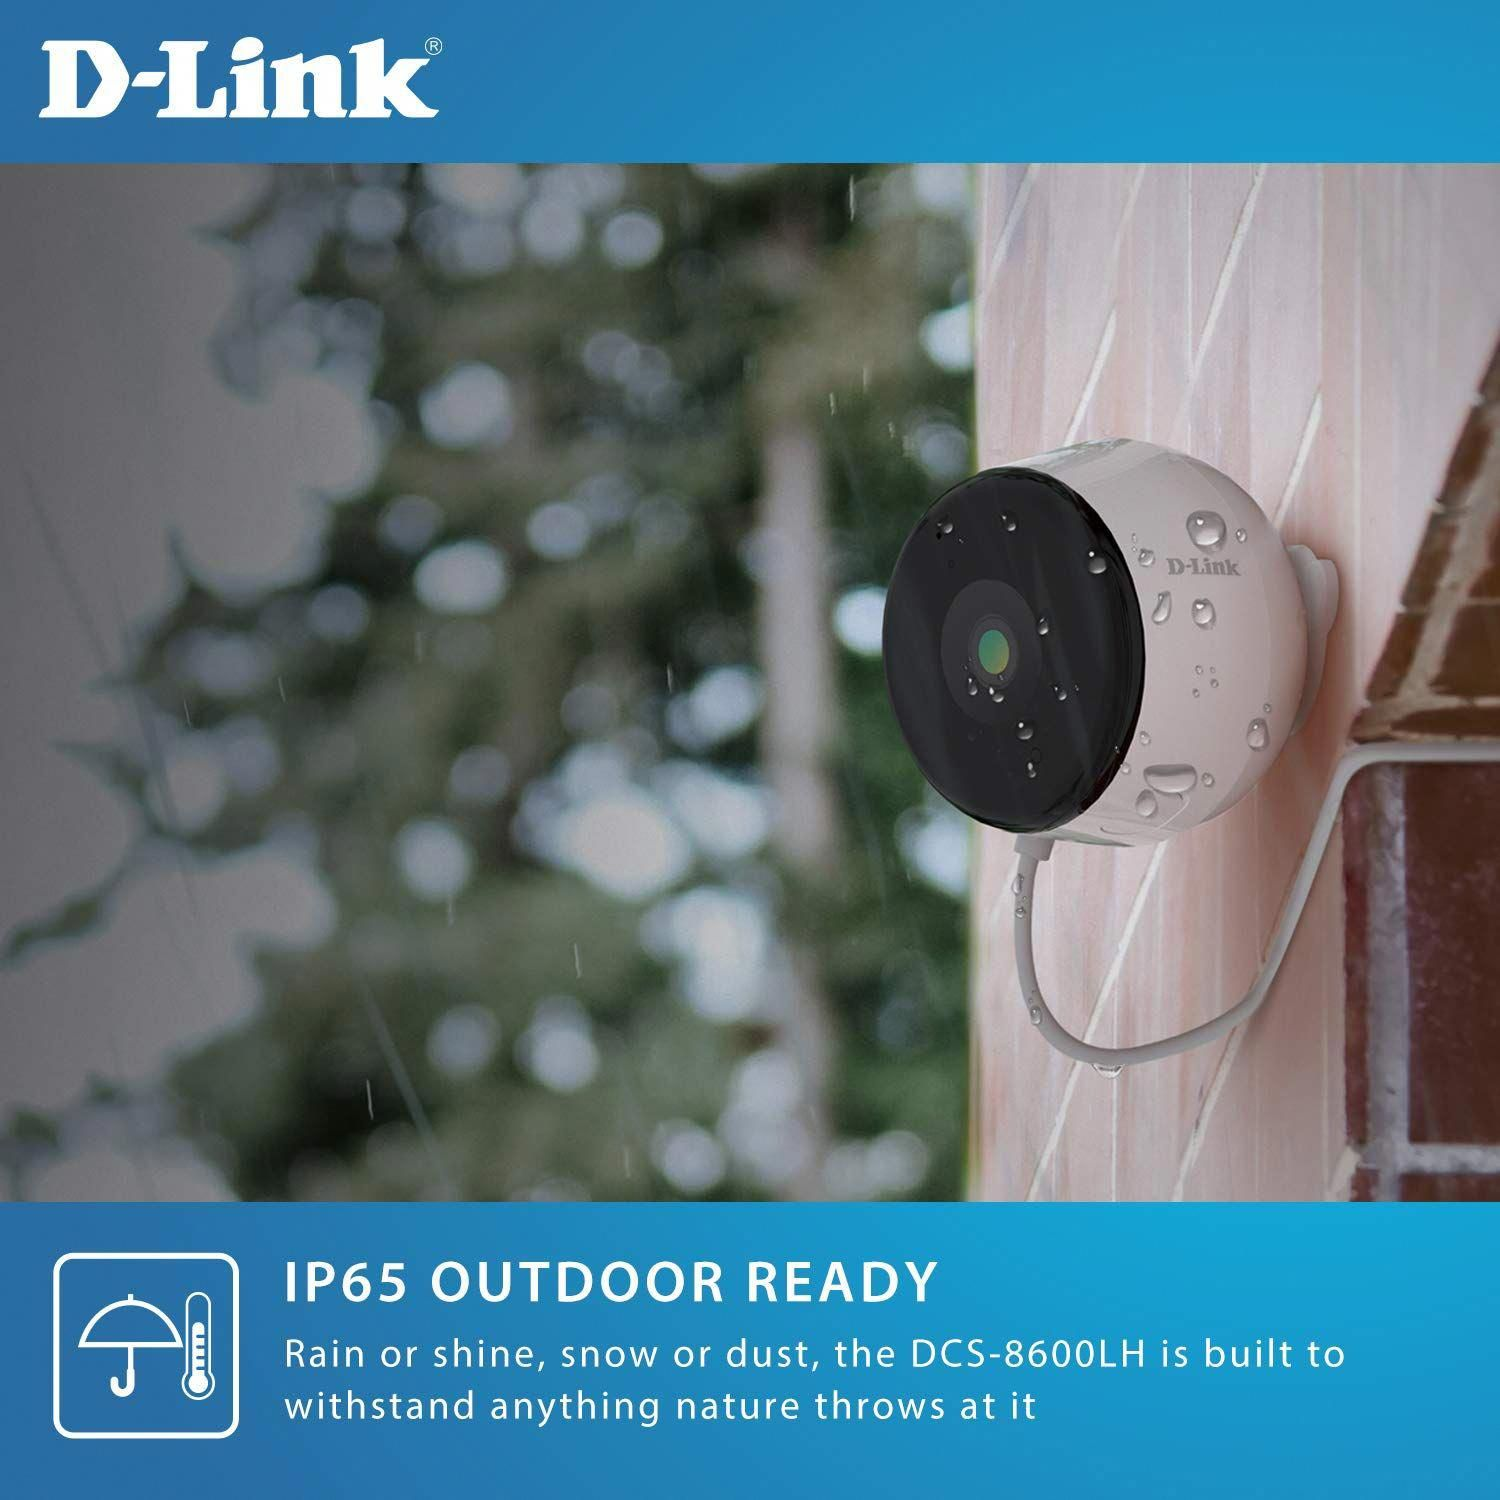 Best Wireless Outdoor Security Cameras Home Security Securitycameras Homesecuri Wireless Security Camera Outdoor Outdoor Security Camera Home Security Systems